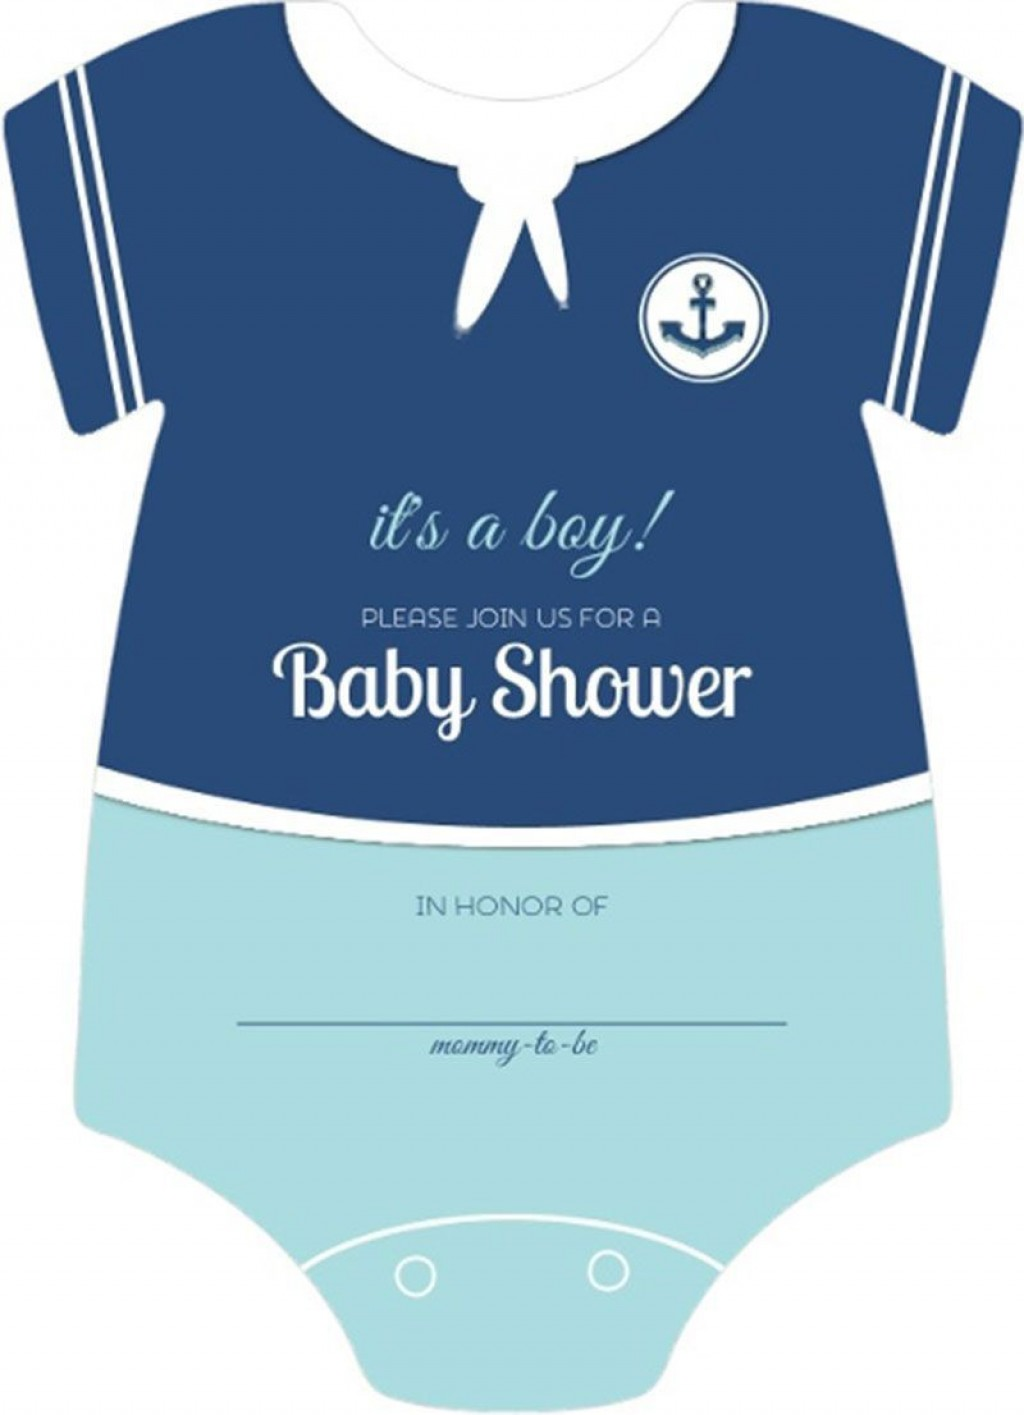 003 Exceptional Onesie Baby Shower Invitation Template Image  FreeLarge